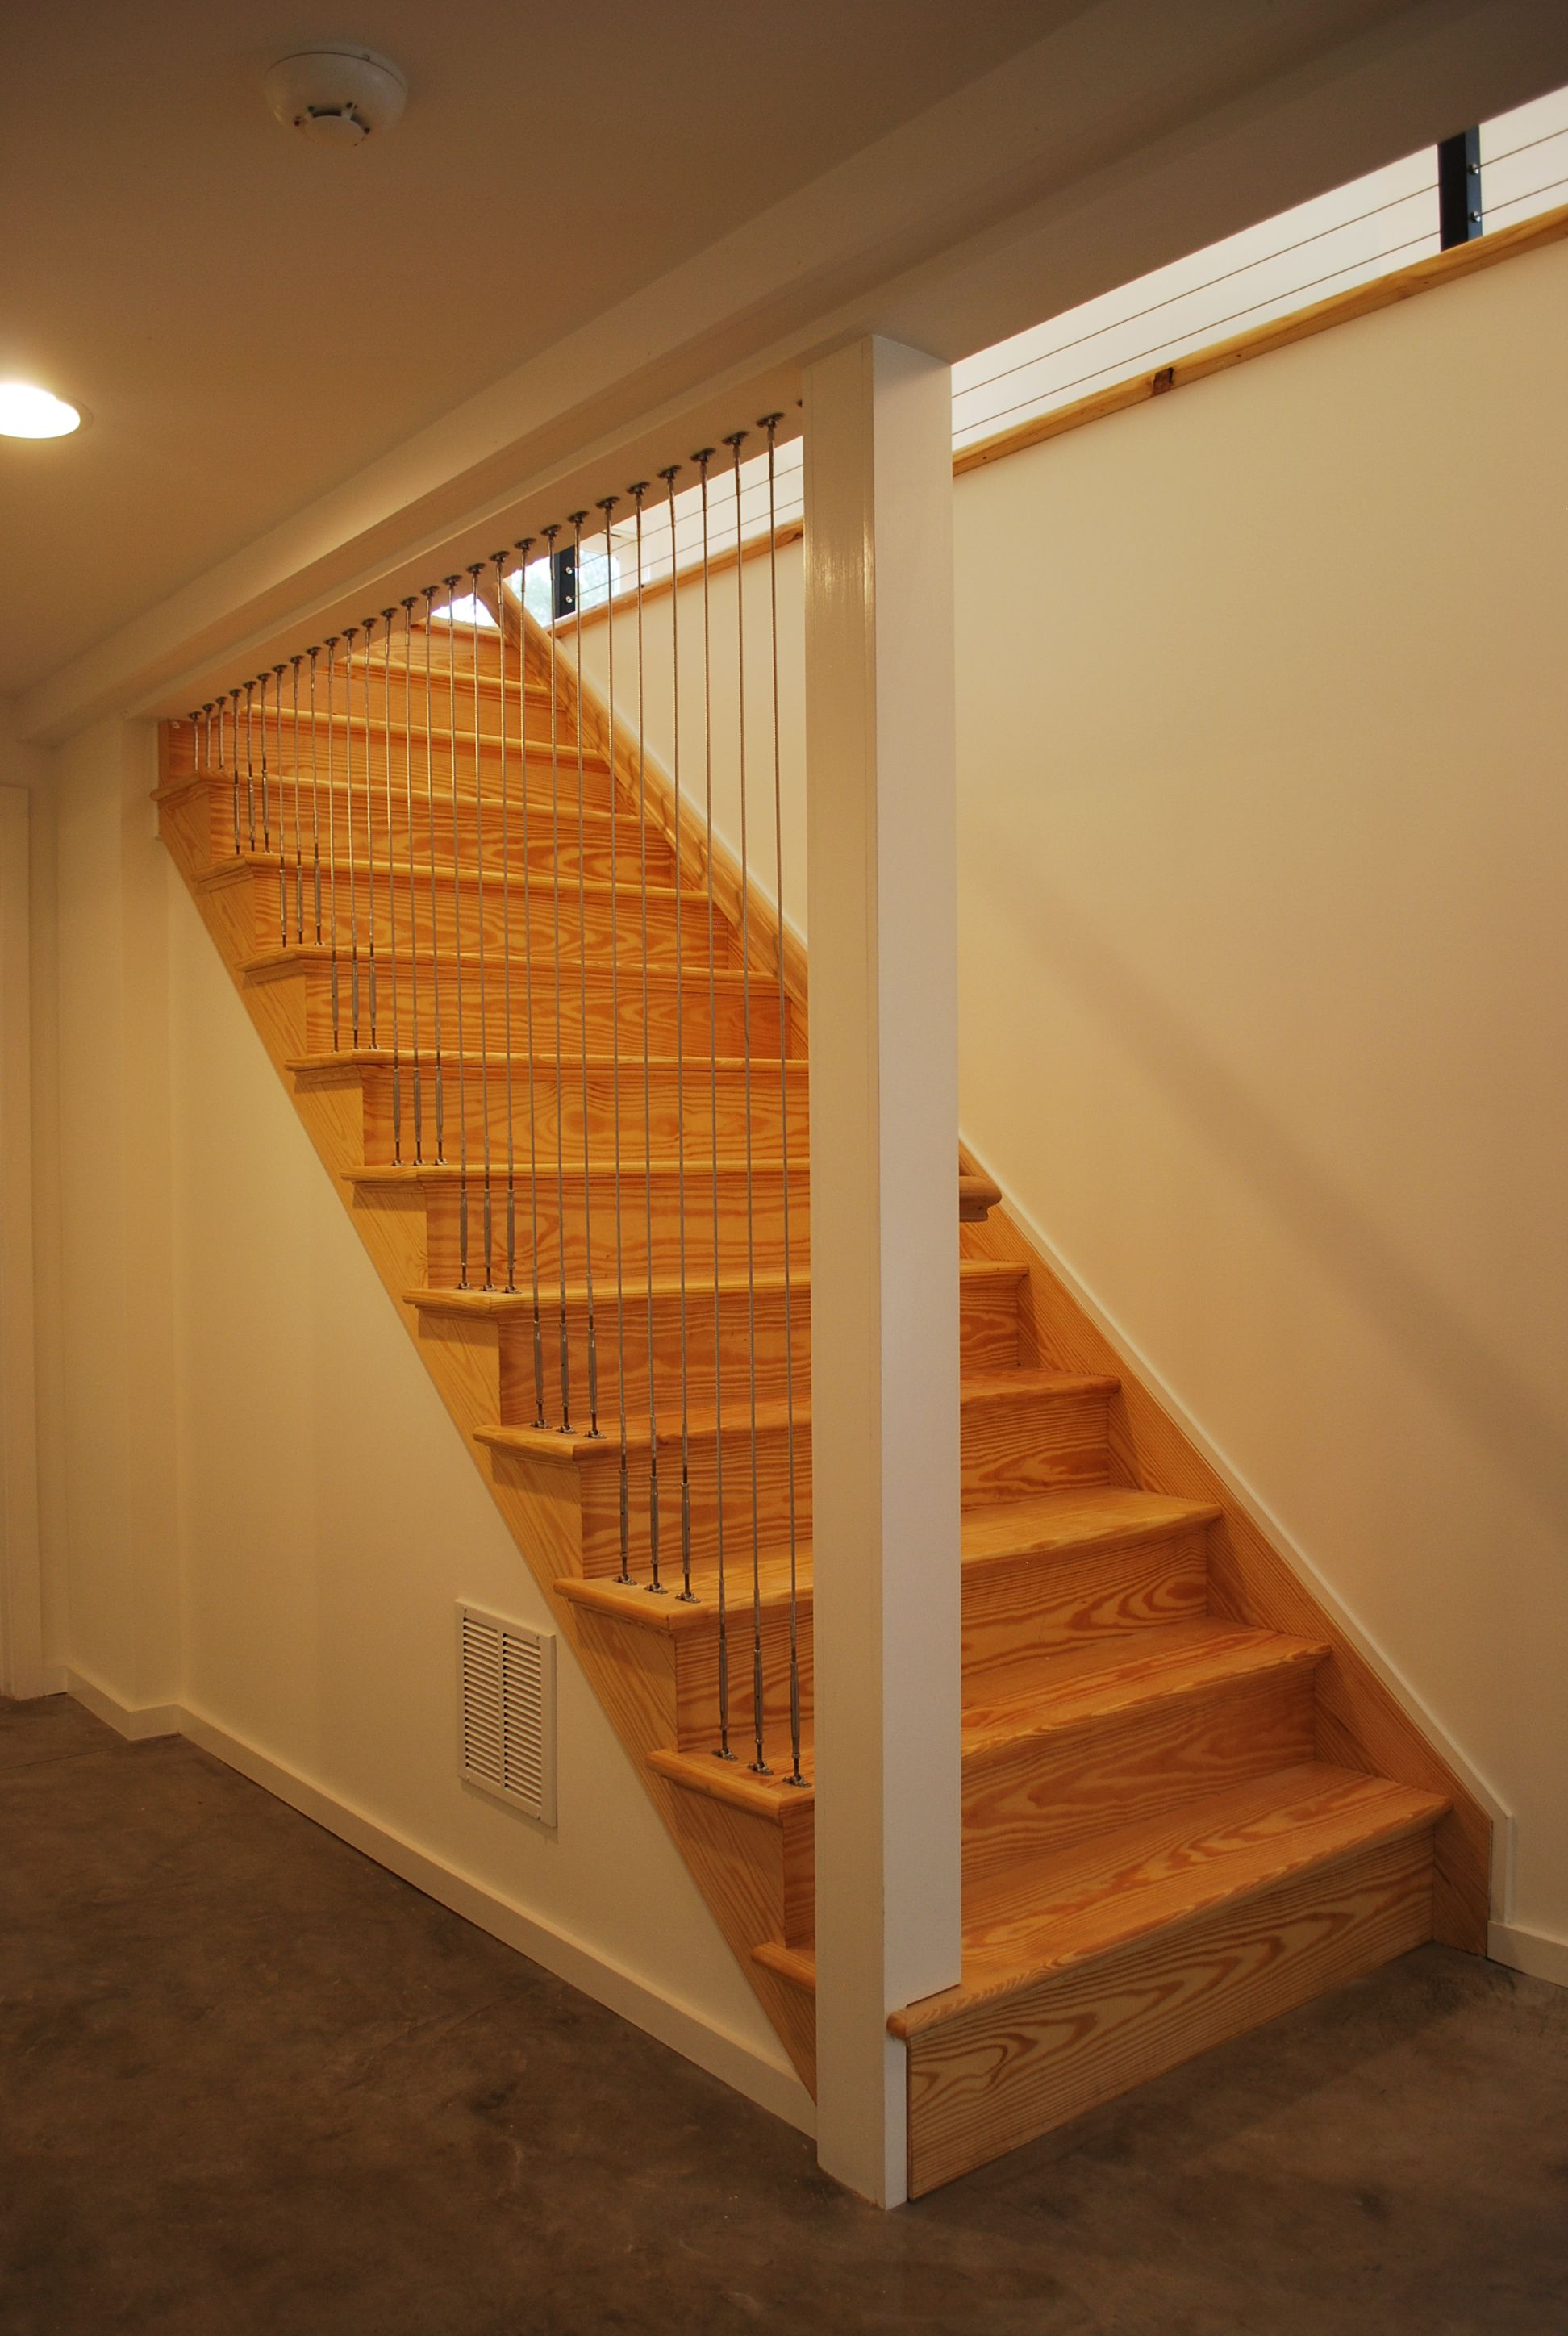 Natural Stain Staircase With Metal Cable Rail Railing For An